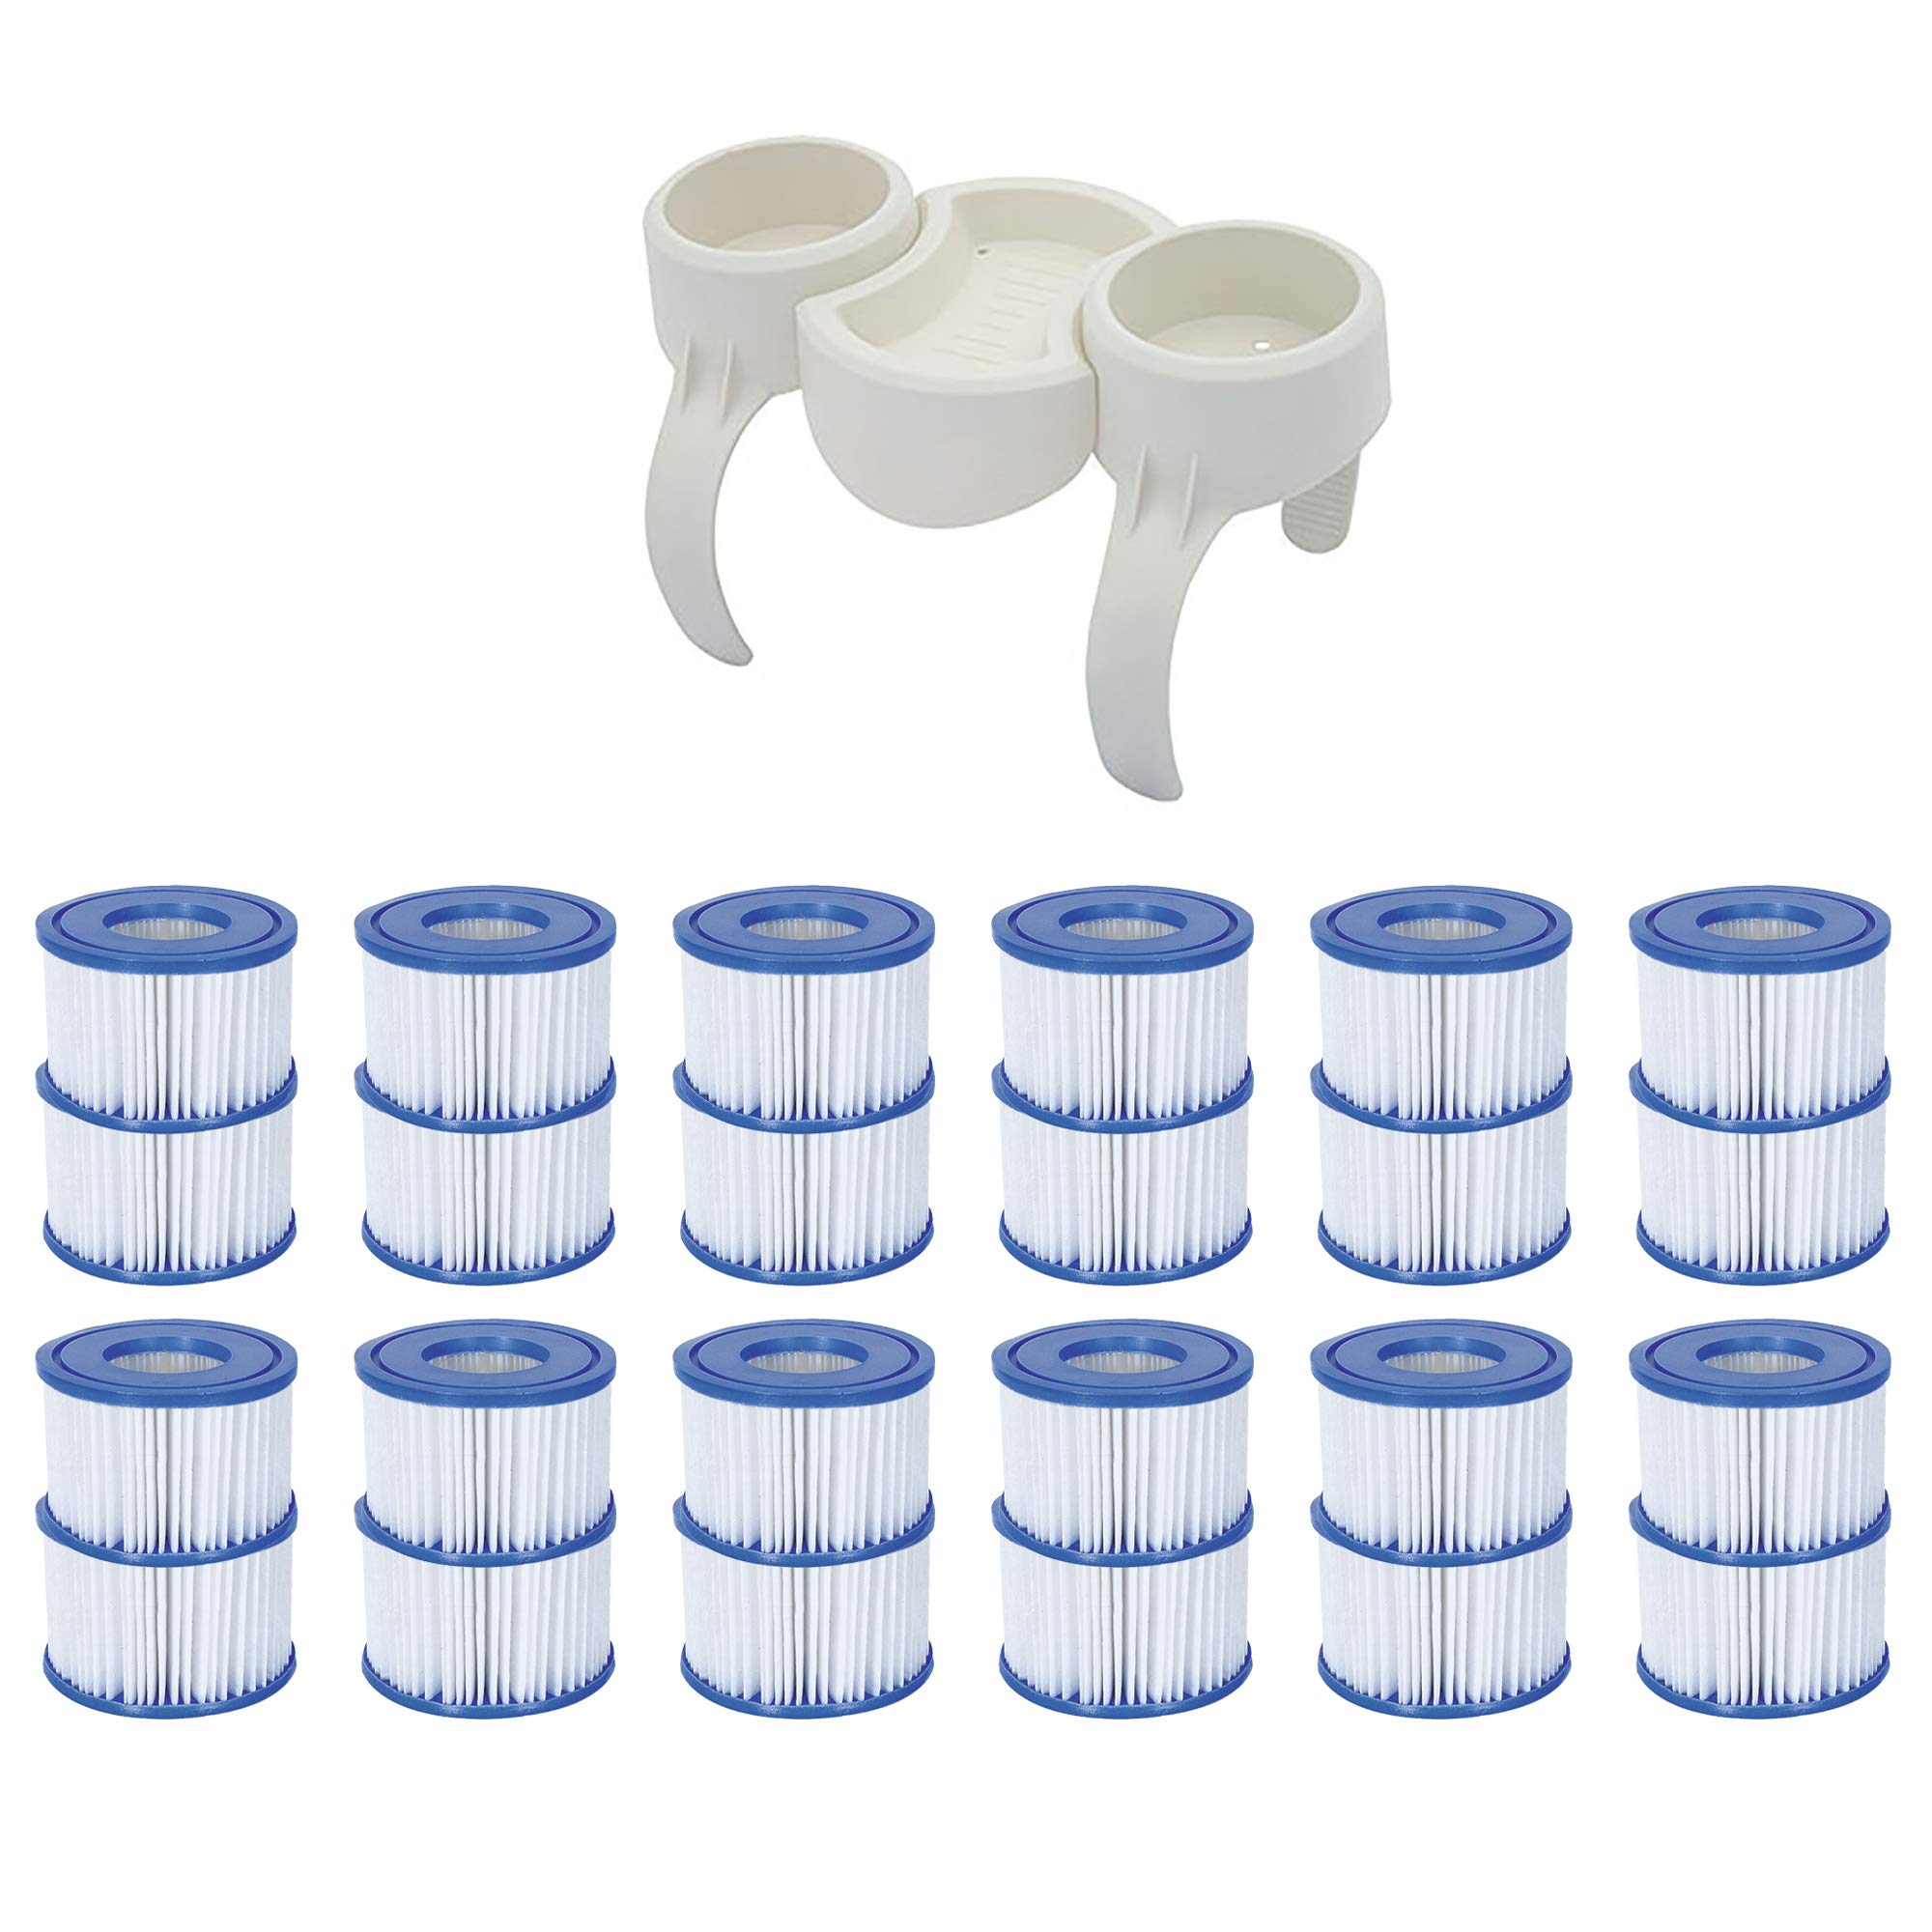 Bestway Plastic SaluSpa Drinks Holder and Snack Tray & Type VI Filters (24 Pack) by Bestway